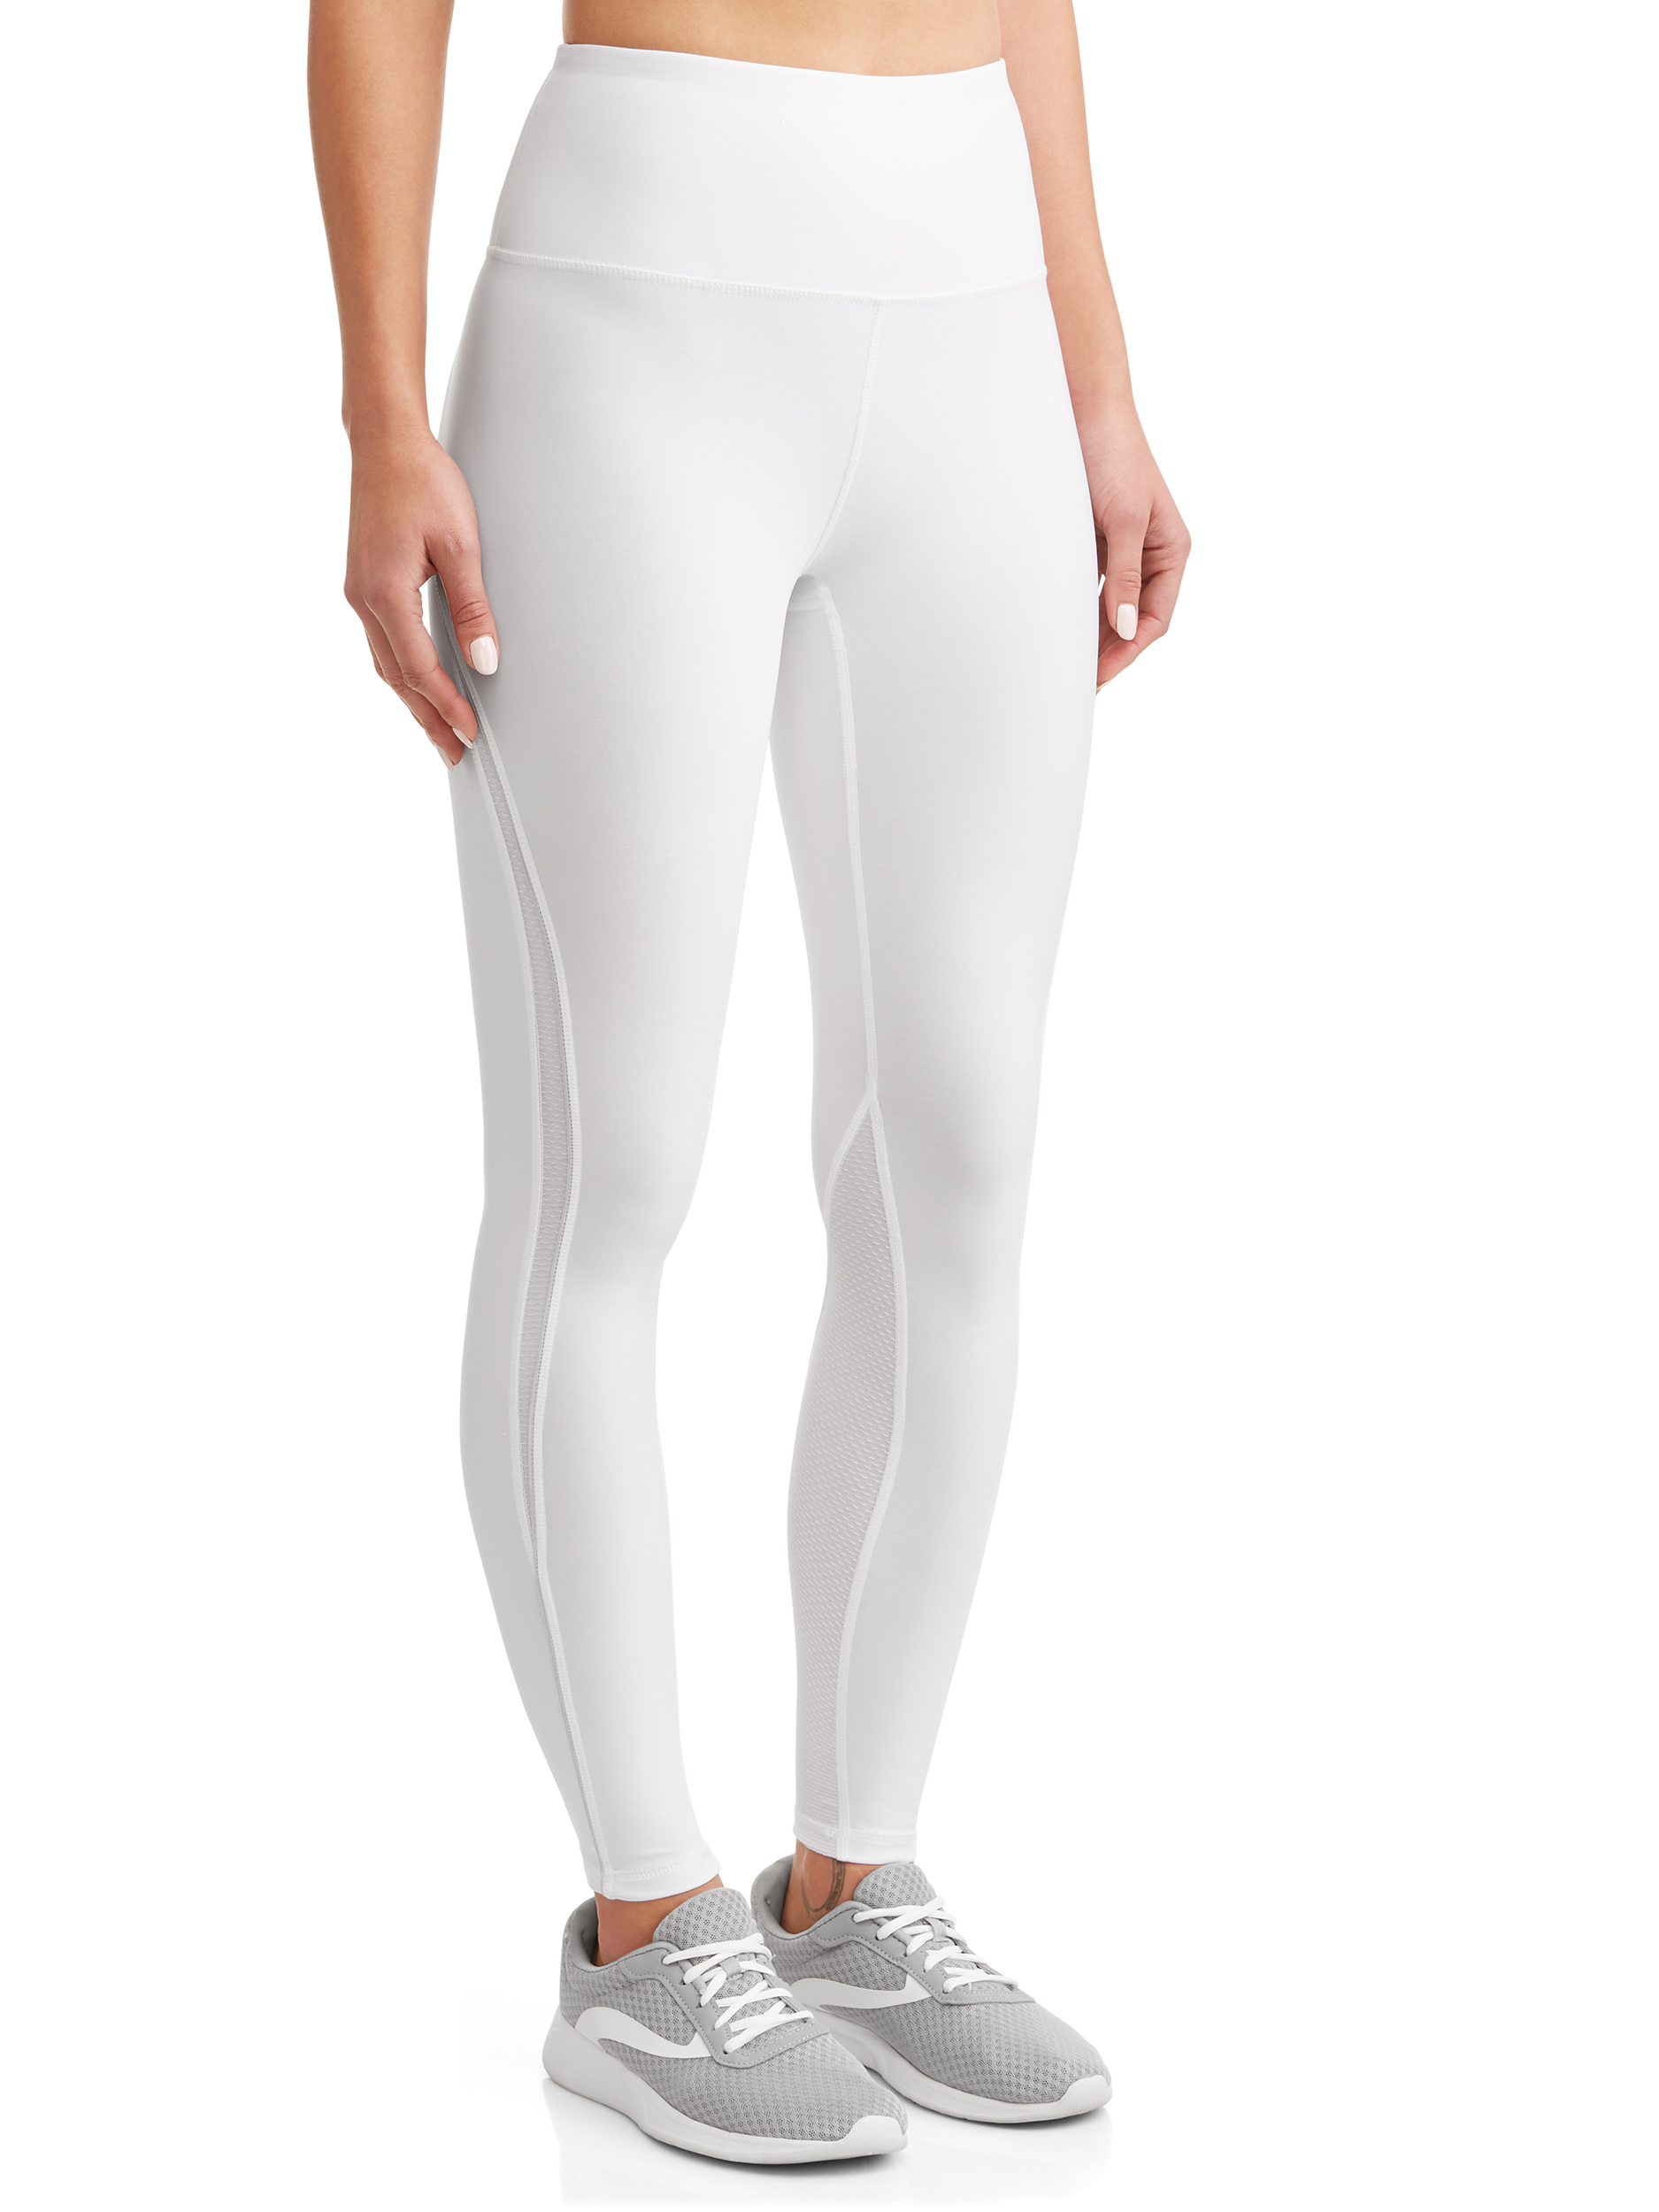 Women's Active 26.5 Legging with Piping